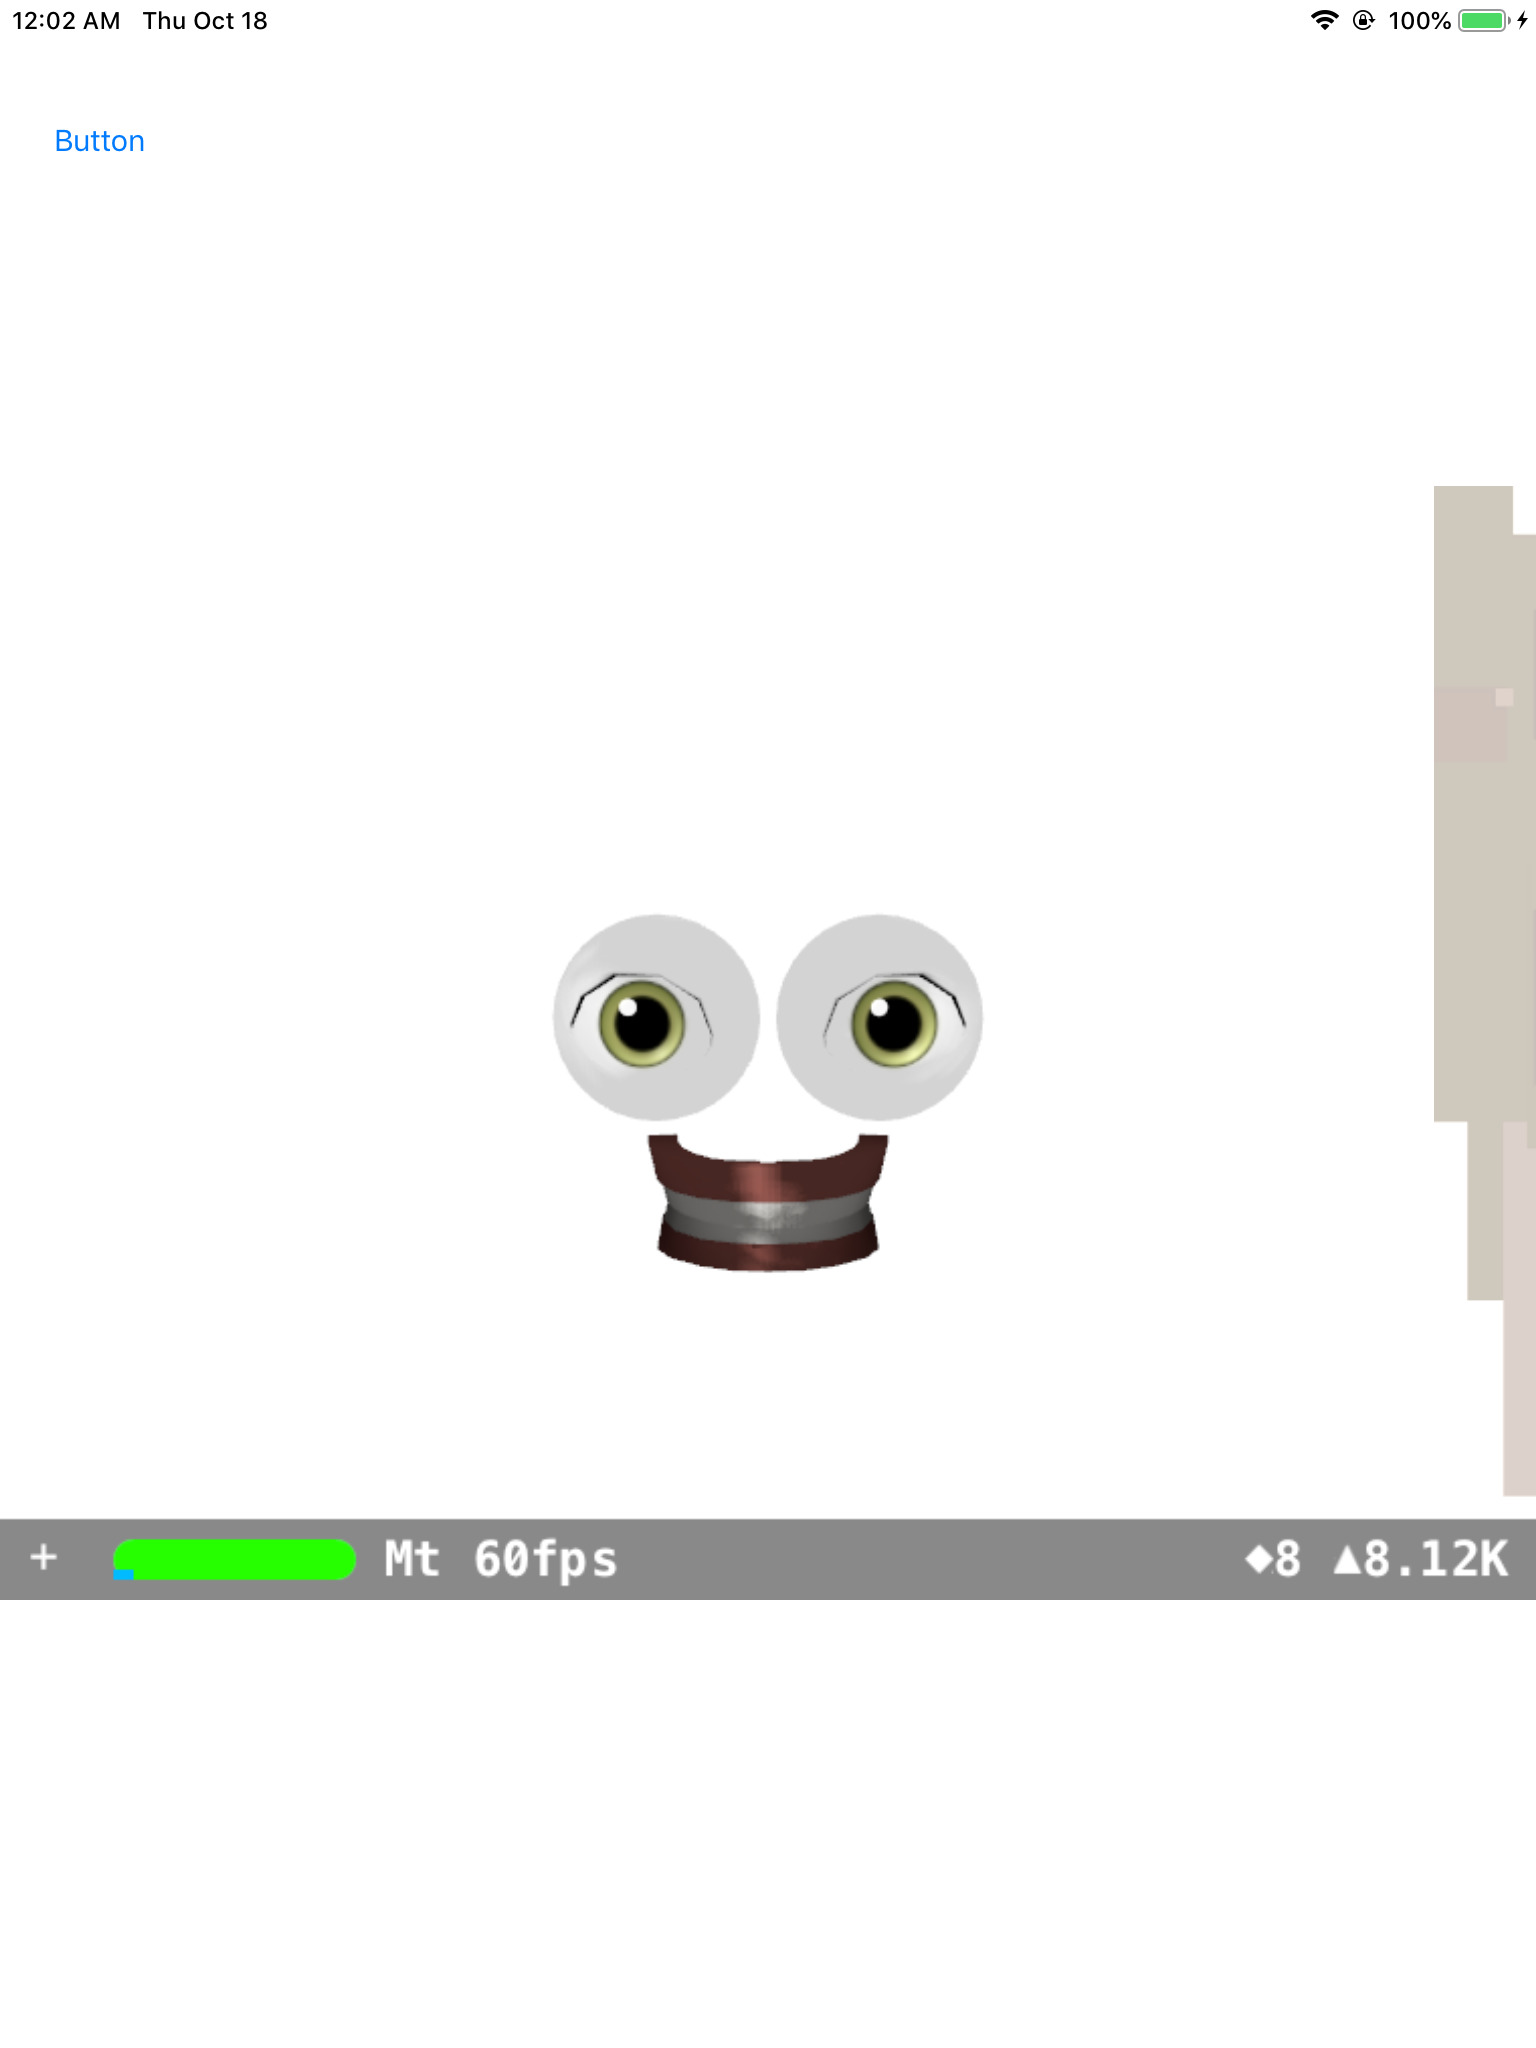 glitched Memoji, showing only disembodied eyes and teeth